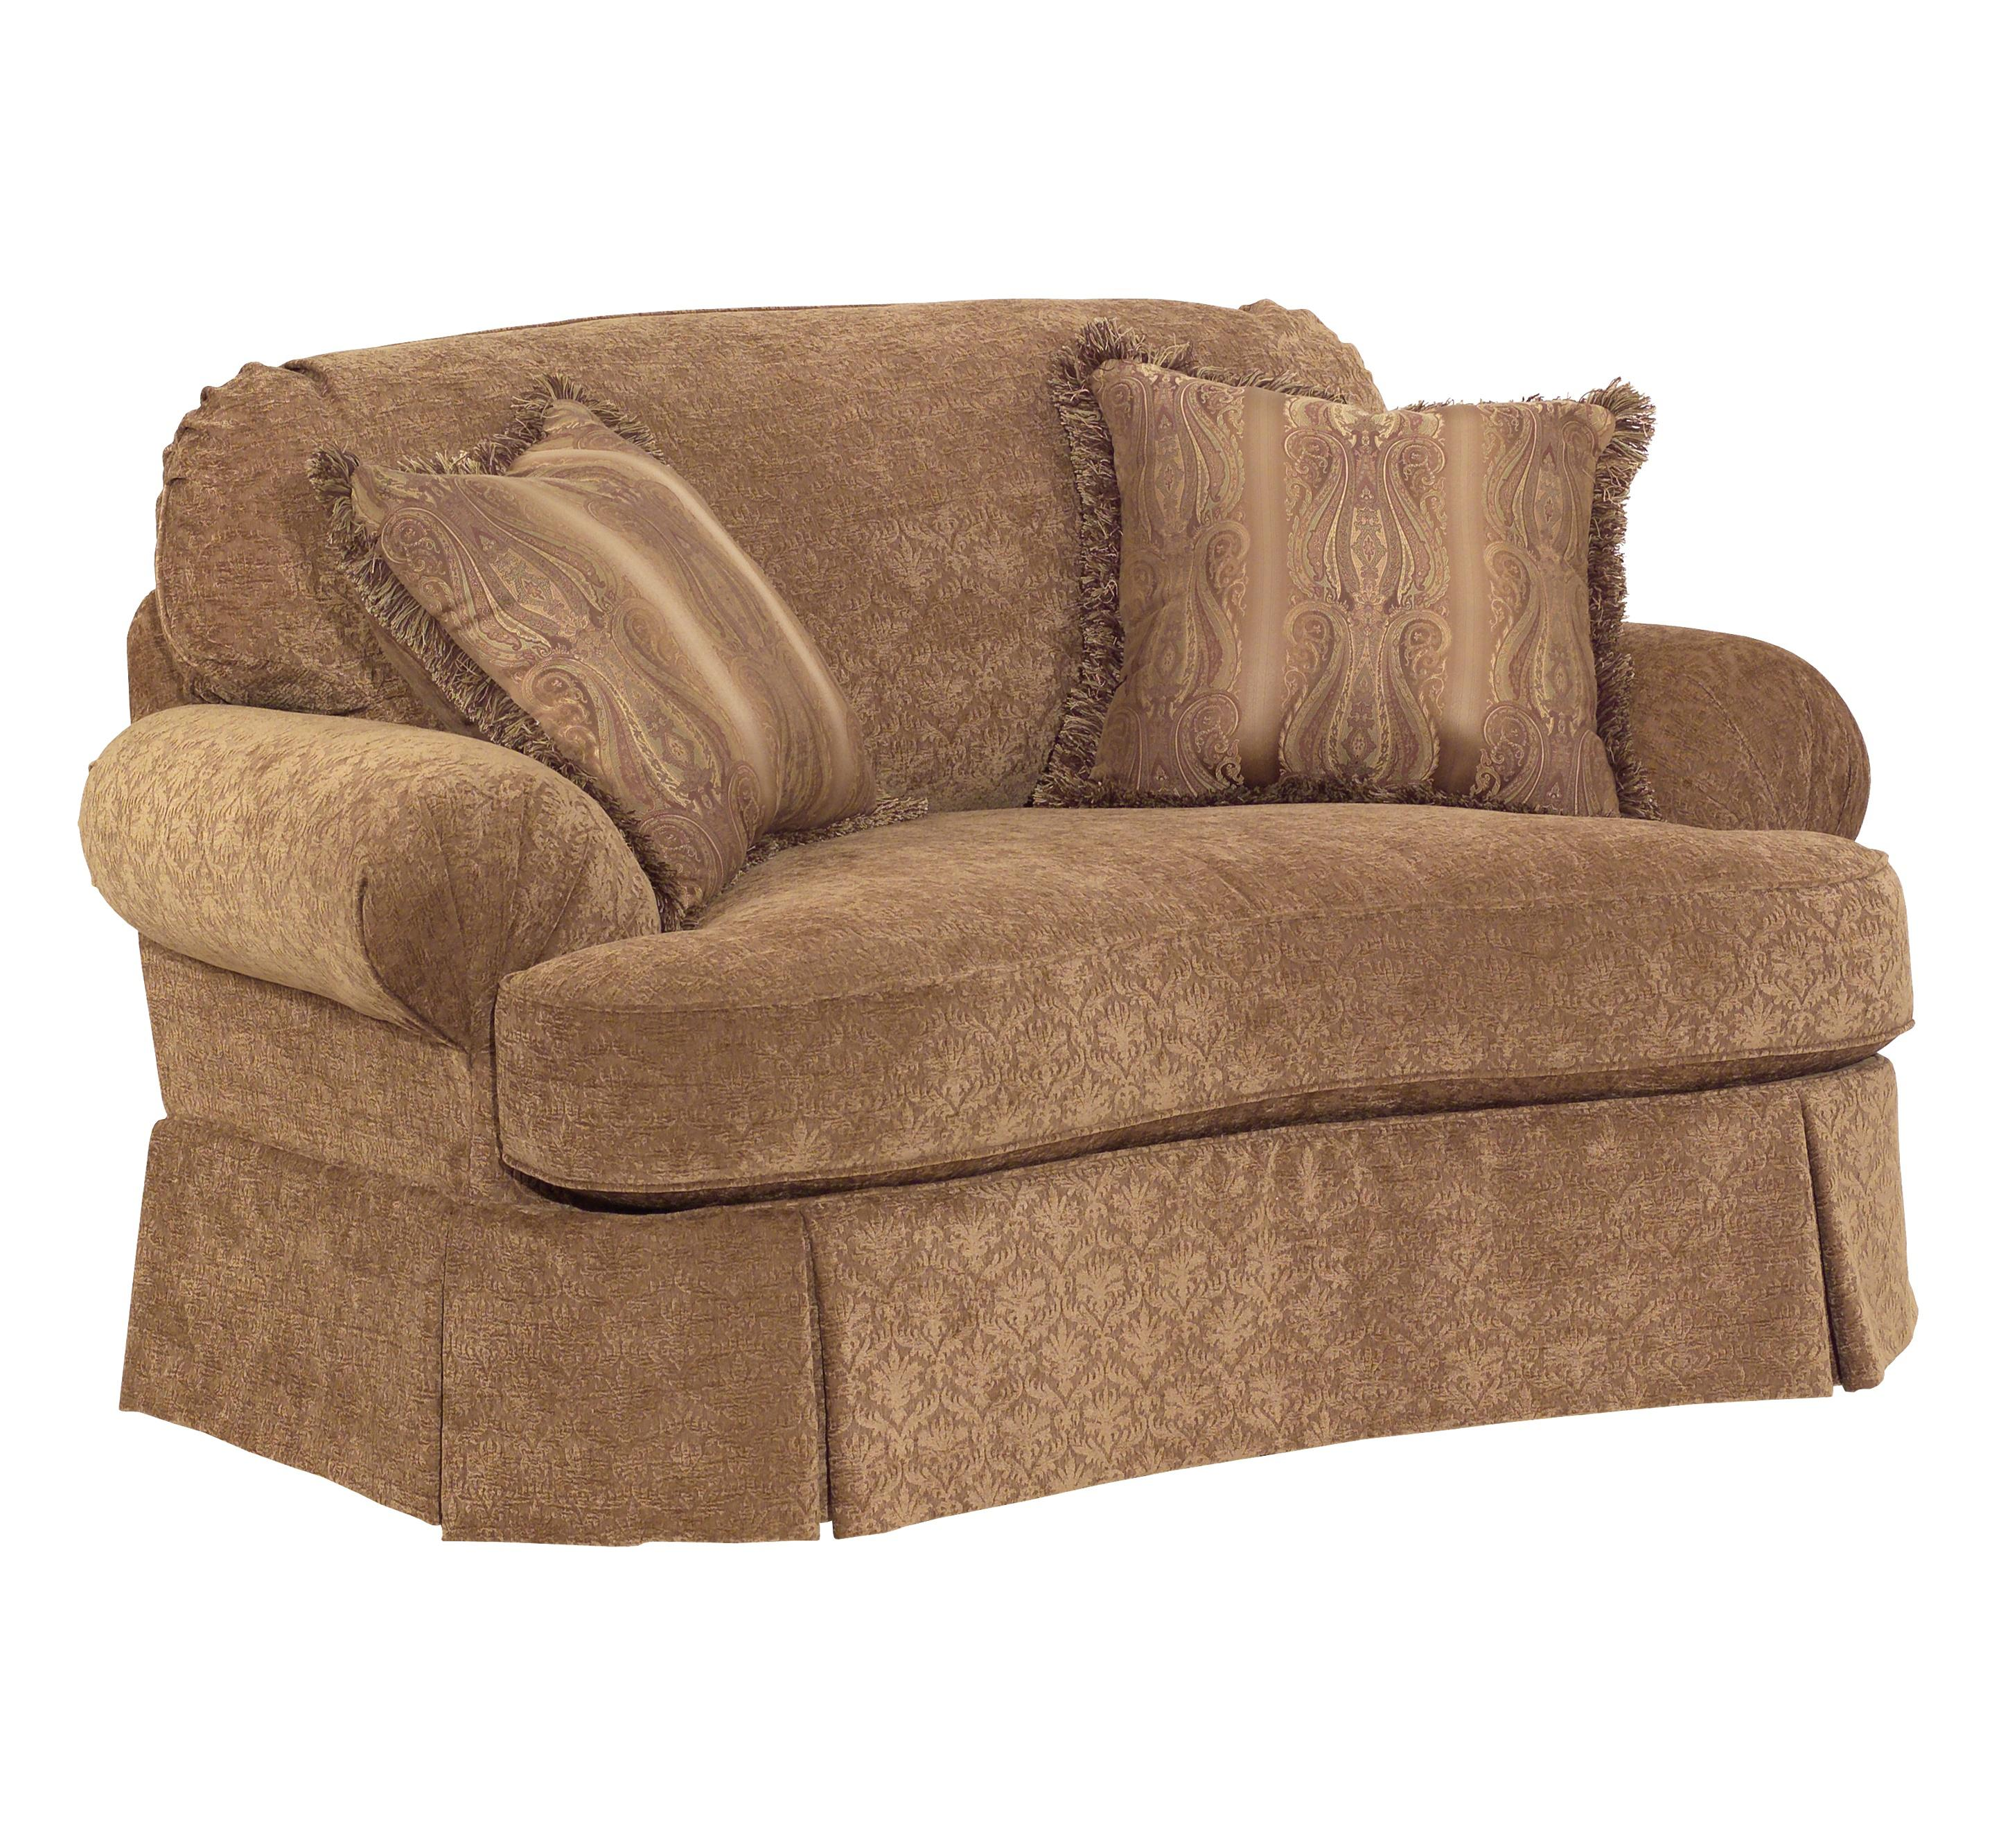 Broyhill Furniture McKinney Chair and 1/2 - Item Number: 6544-0